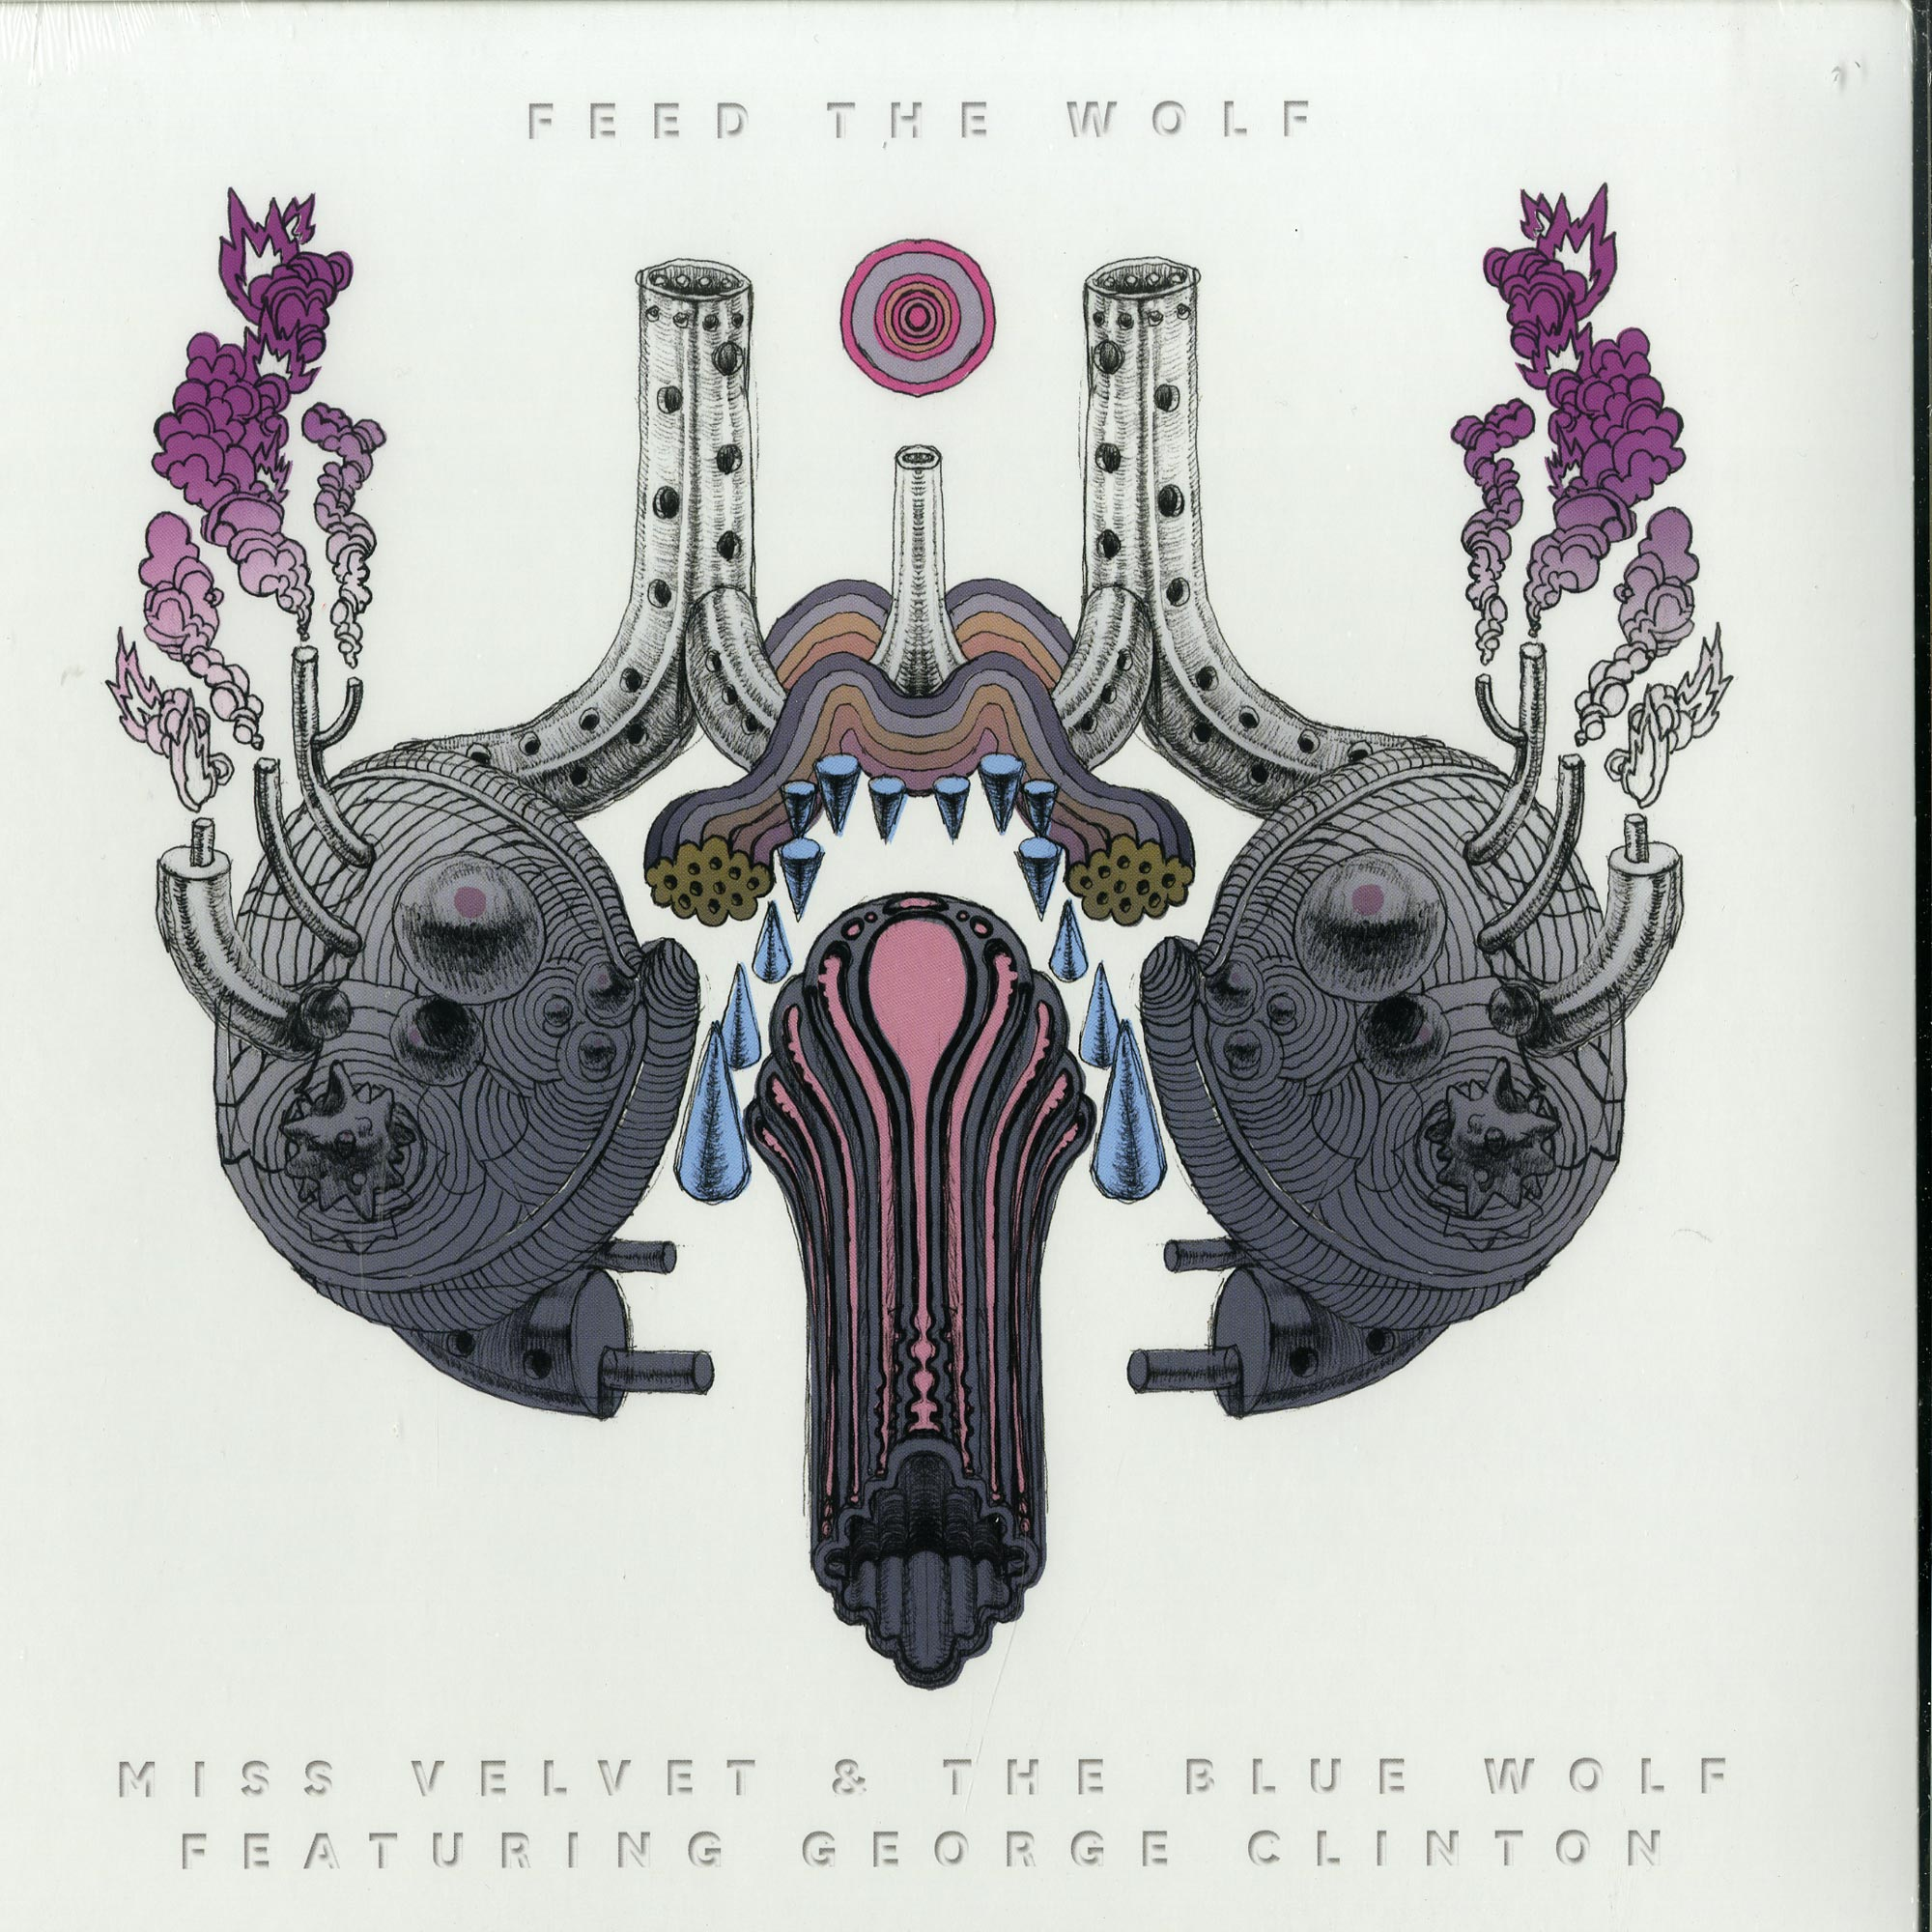 Miss Velvet & The Blue Wolf - FEED THE WOLF